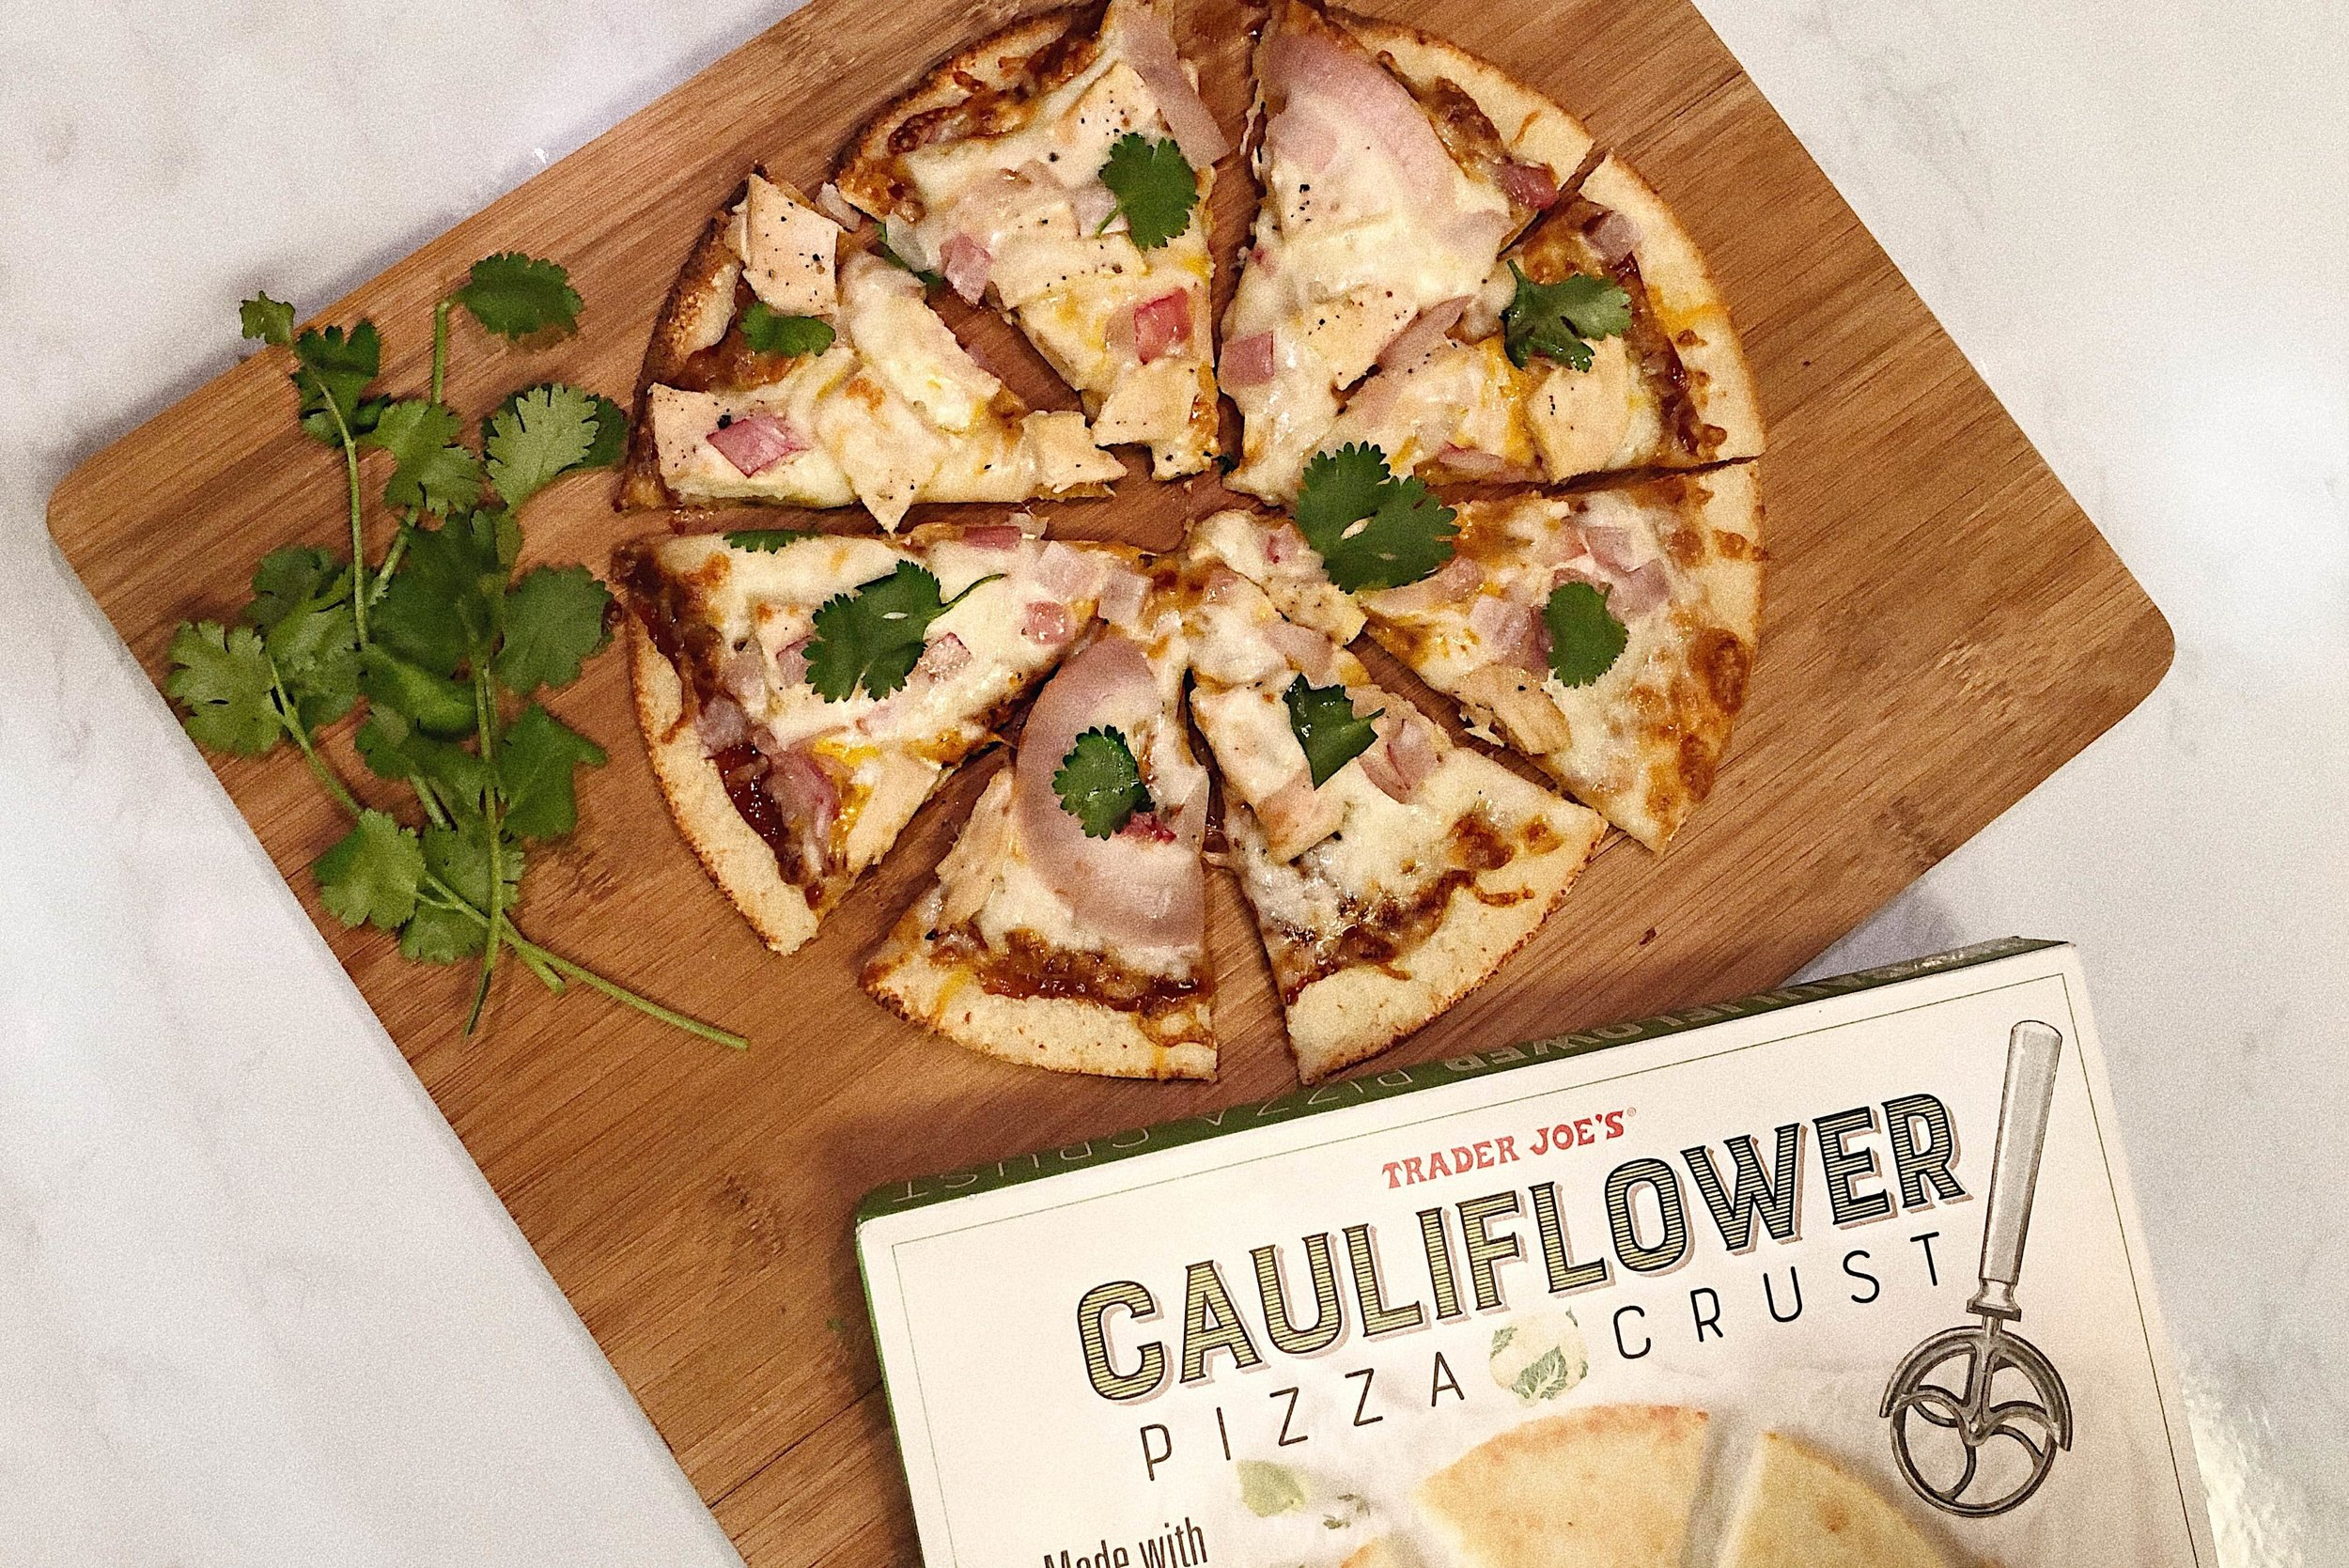 Cauliflower-BBQ-Chicken-Pizza-Banner.jpg